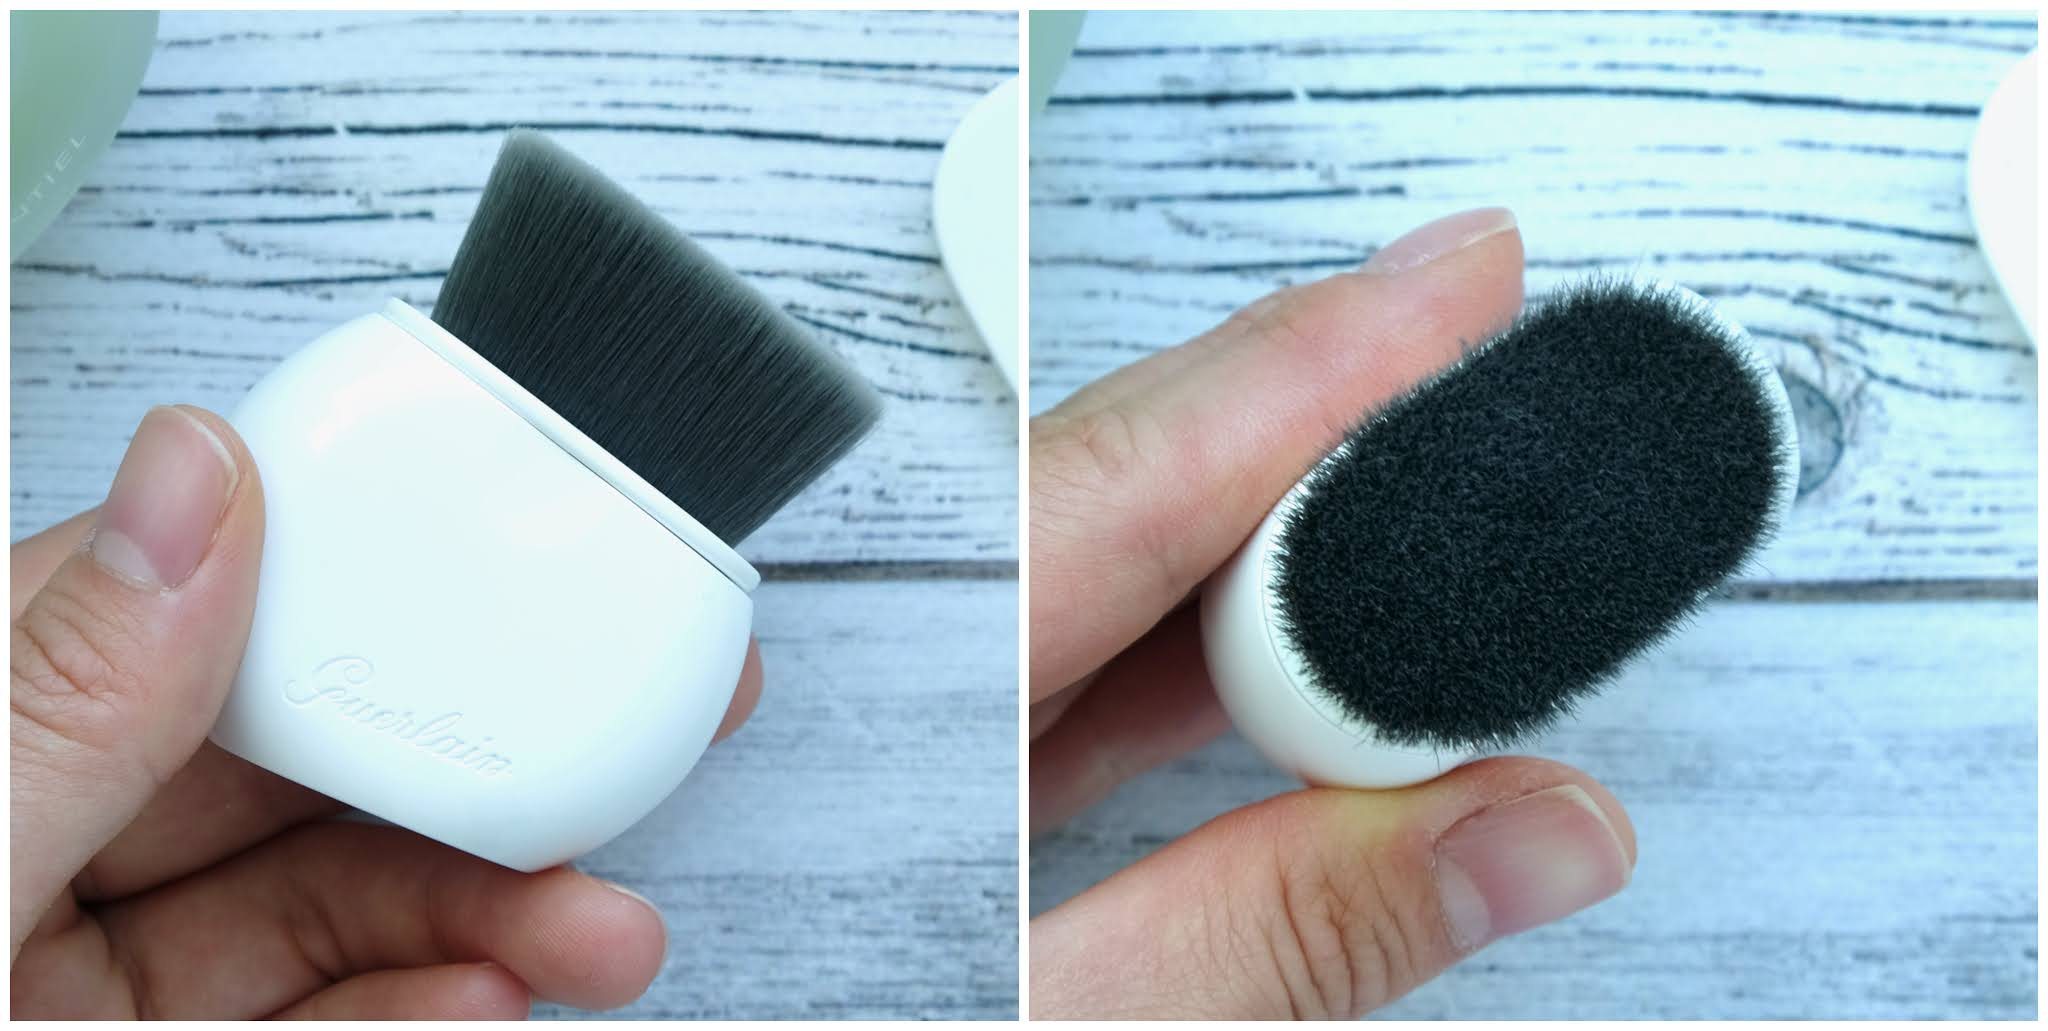 Guerlain | L'Essentiel Retractable Foundation Brush: Review and Swatches